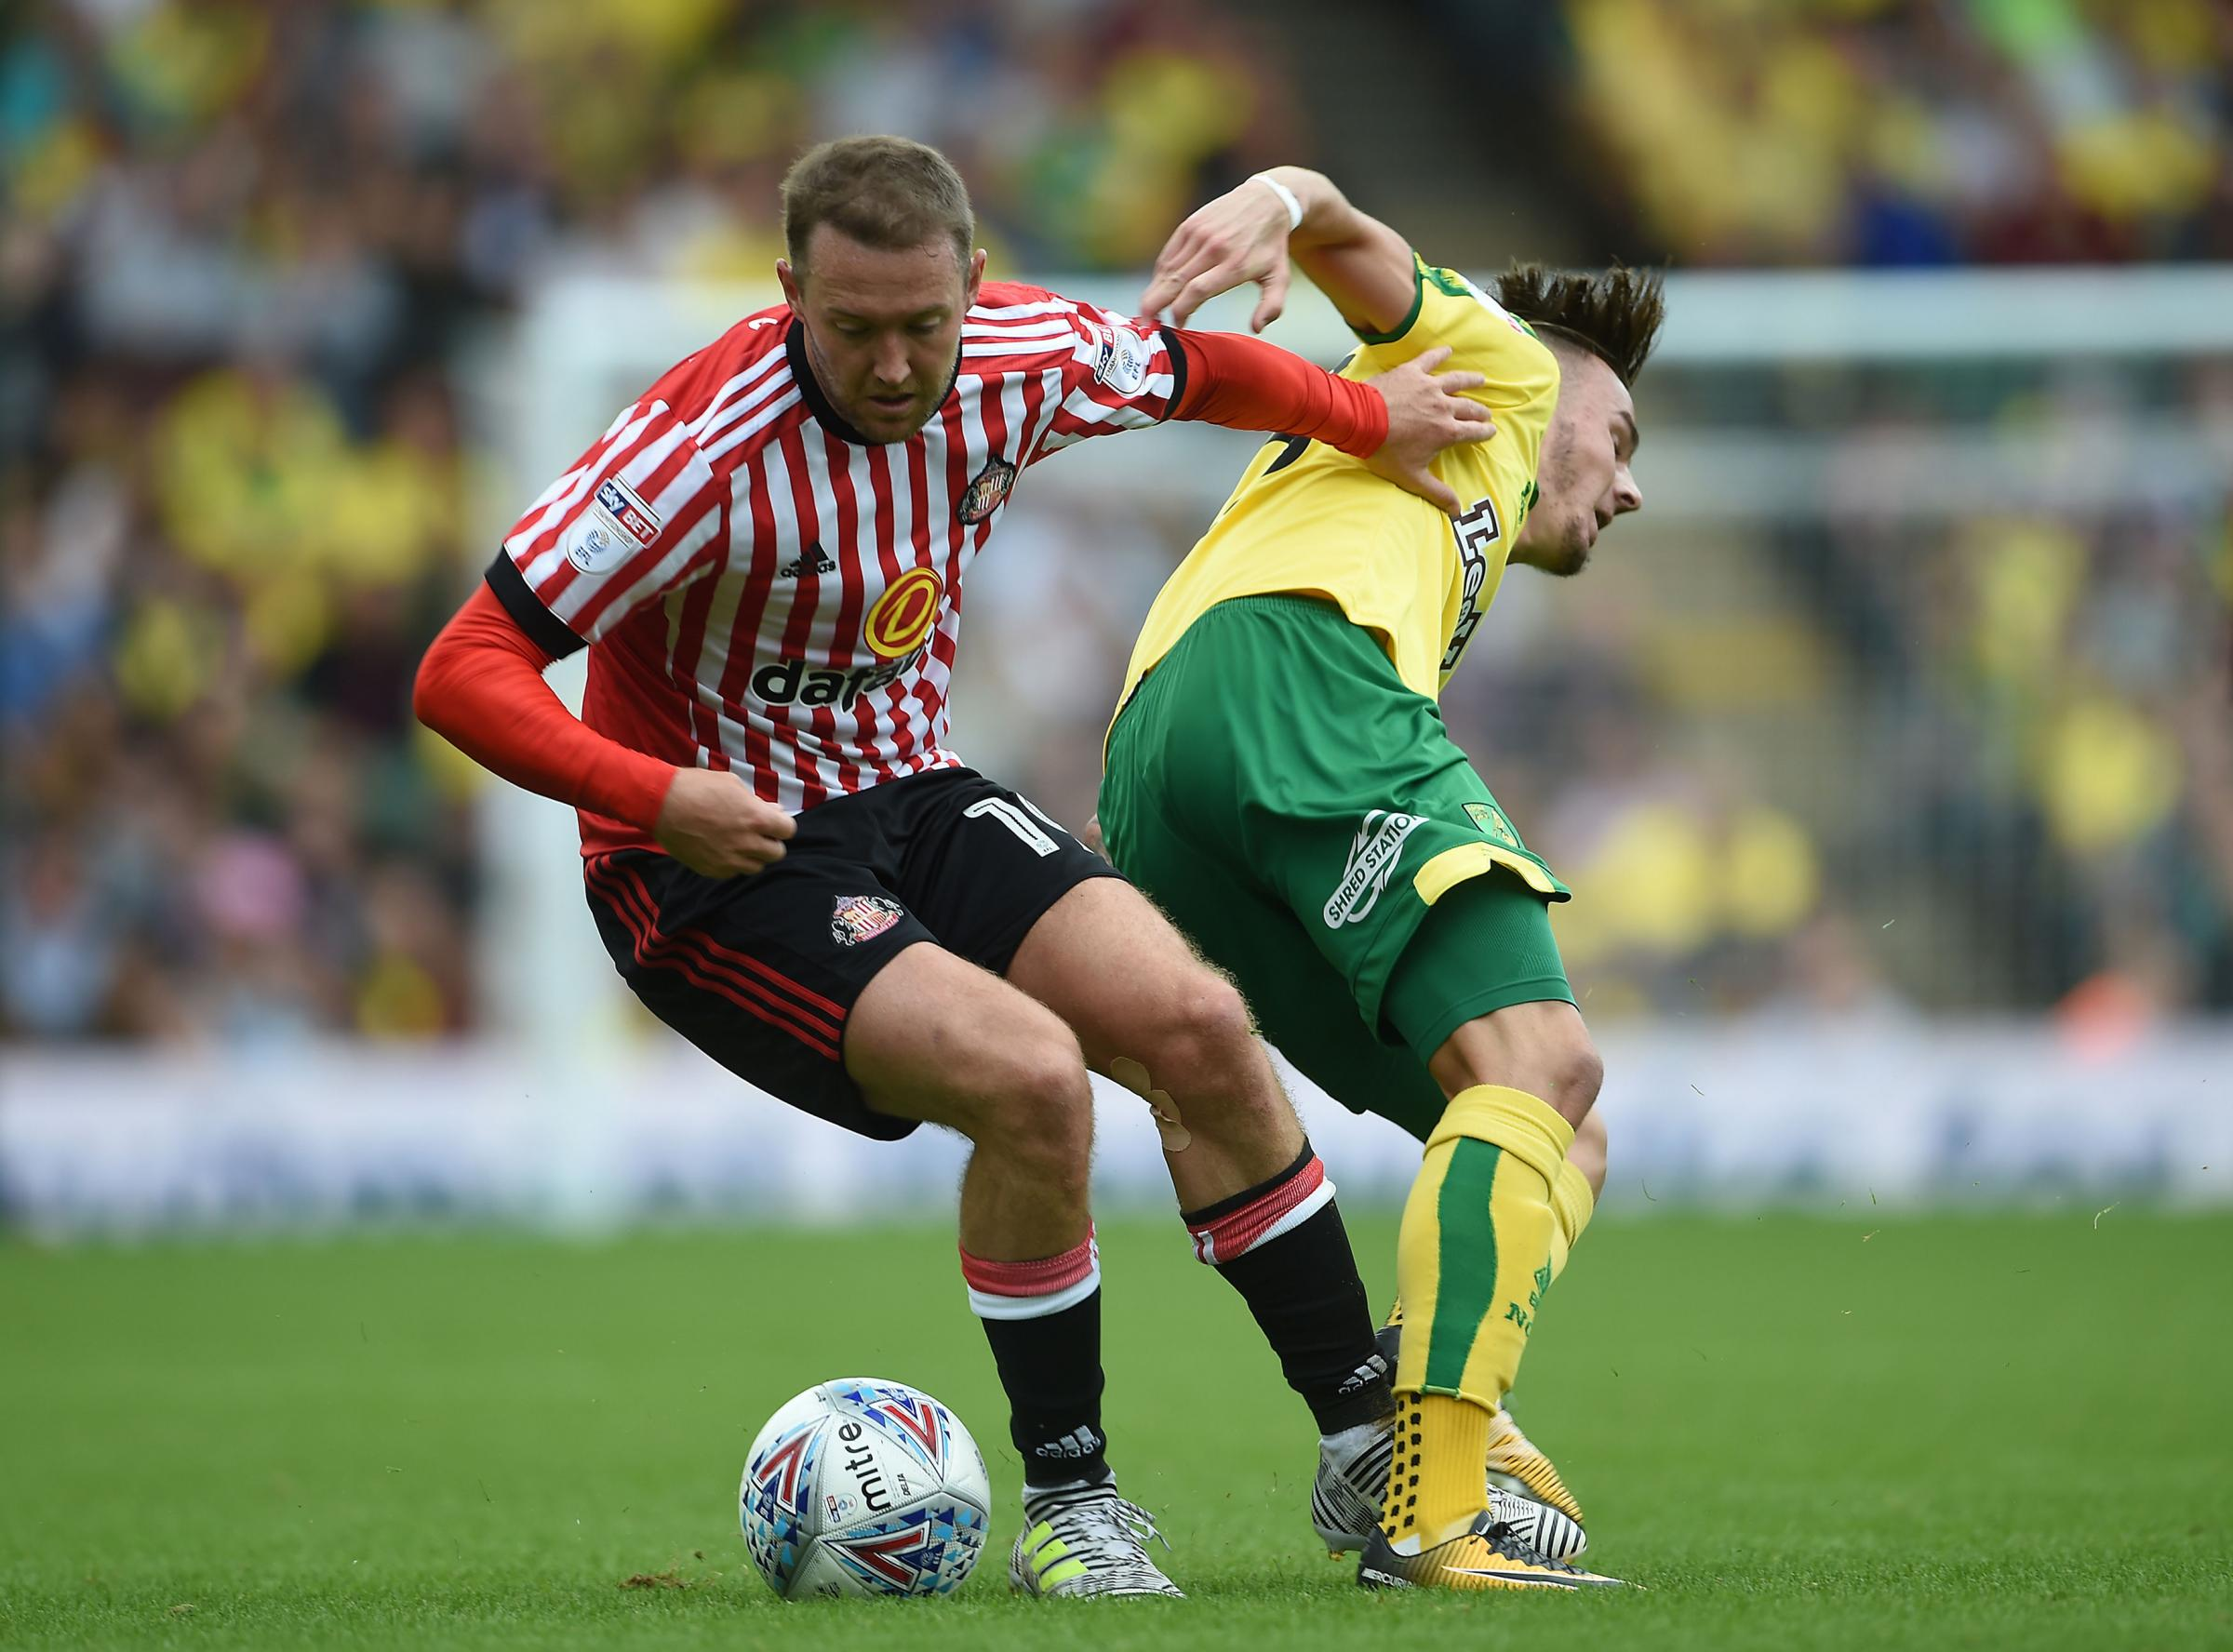 BACK IN TRAINING: Sunderland midfielder Aiden McGeady